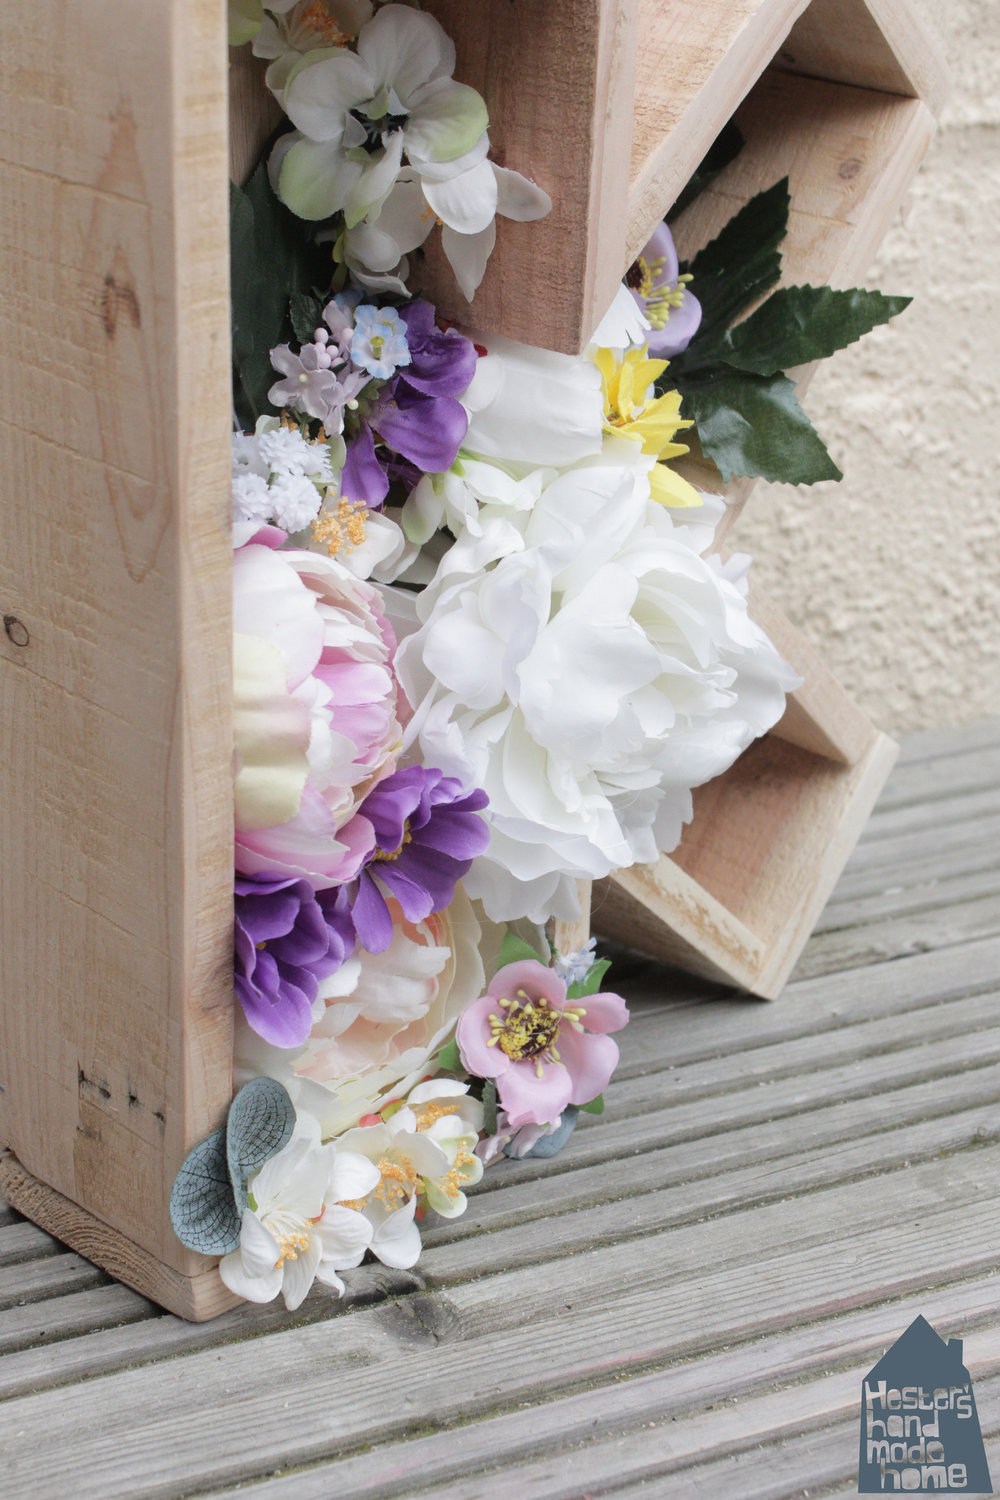 Pallet wood letter planter filled with faux flowers, tutorial by Hester's Handmade Home from her latest book Pallet Wood Projects for Outdoor Spaces